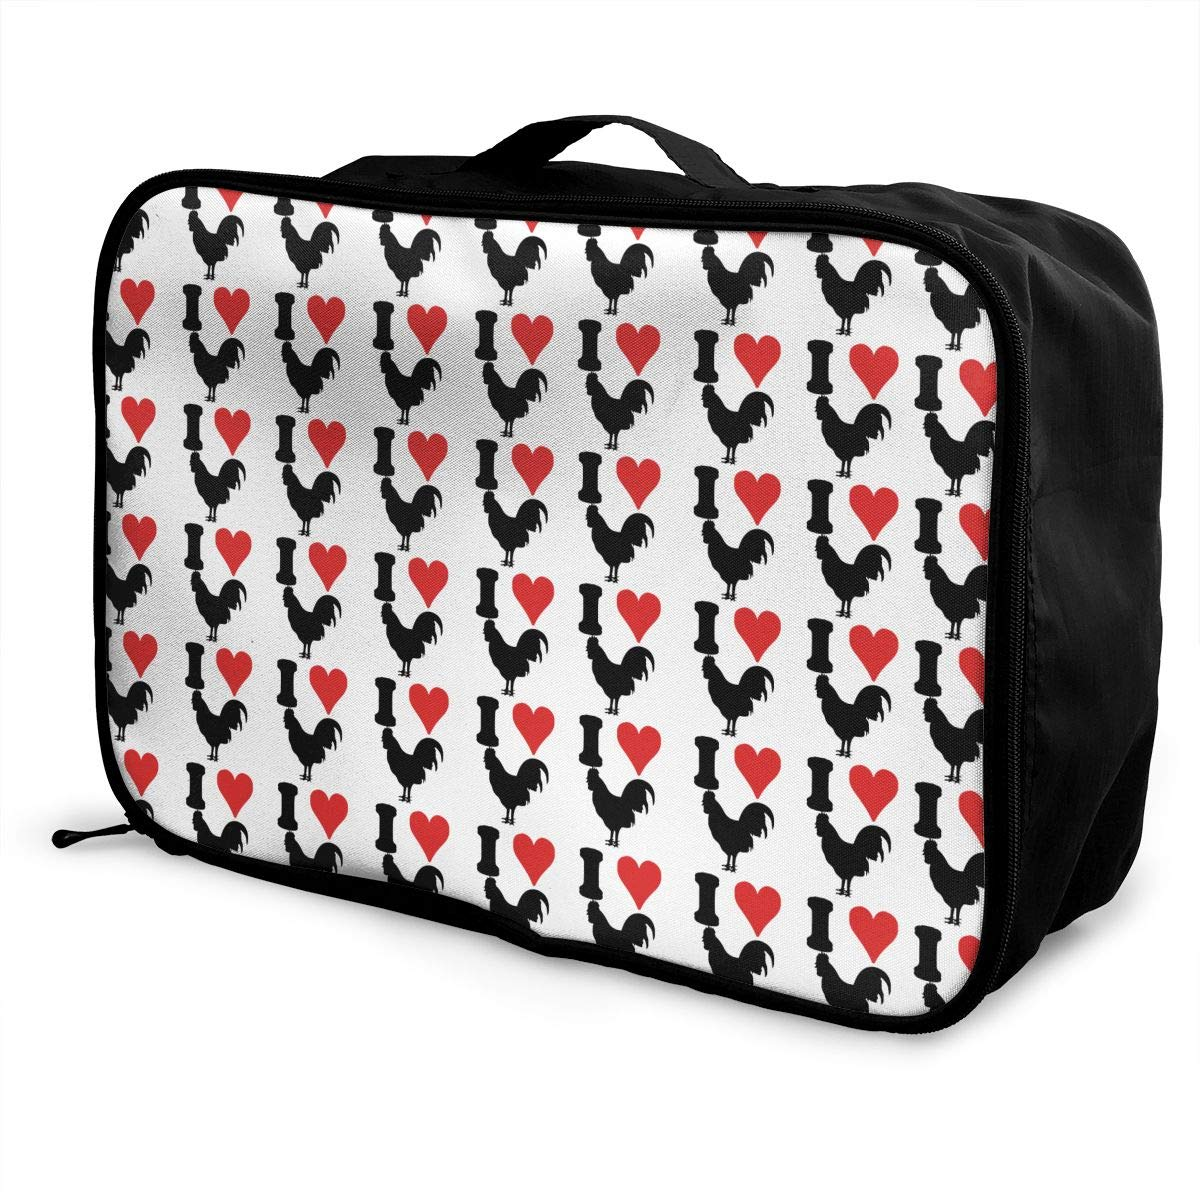 Women /& Men Foldable Travel Duffel Bag I Love Cock Chicken For Luggage Gym Sports